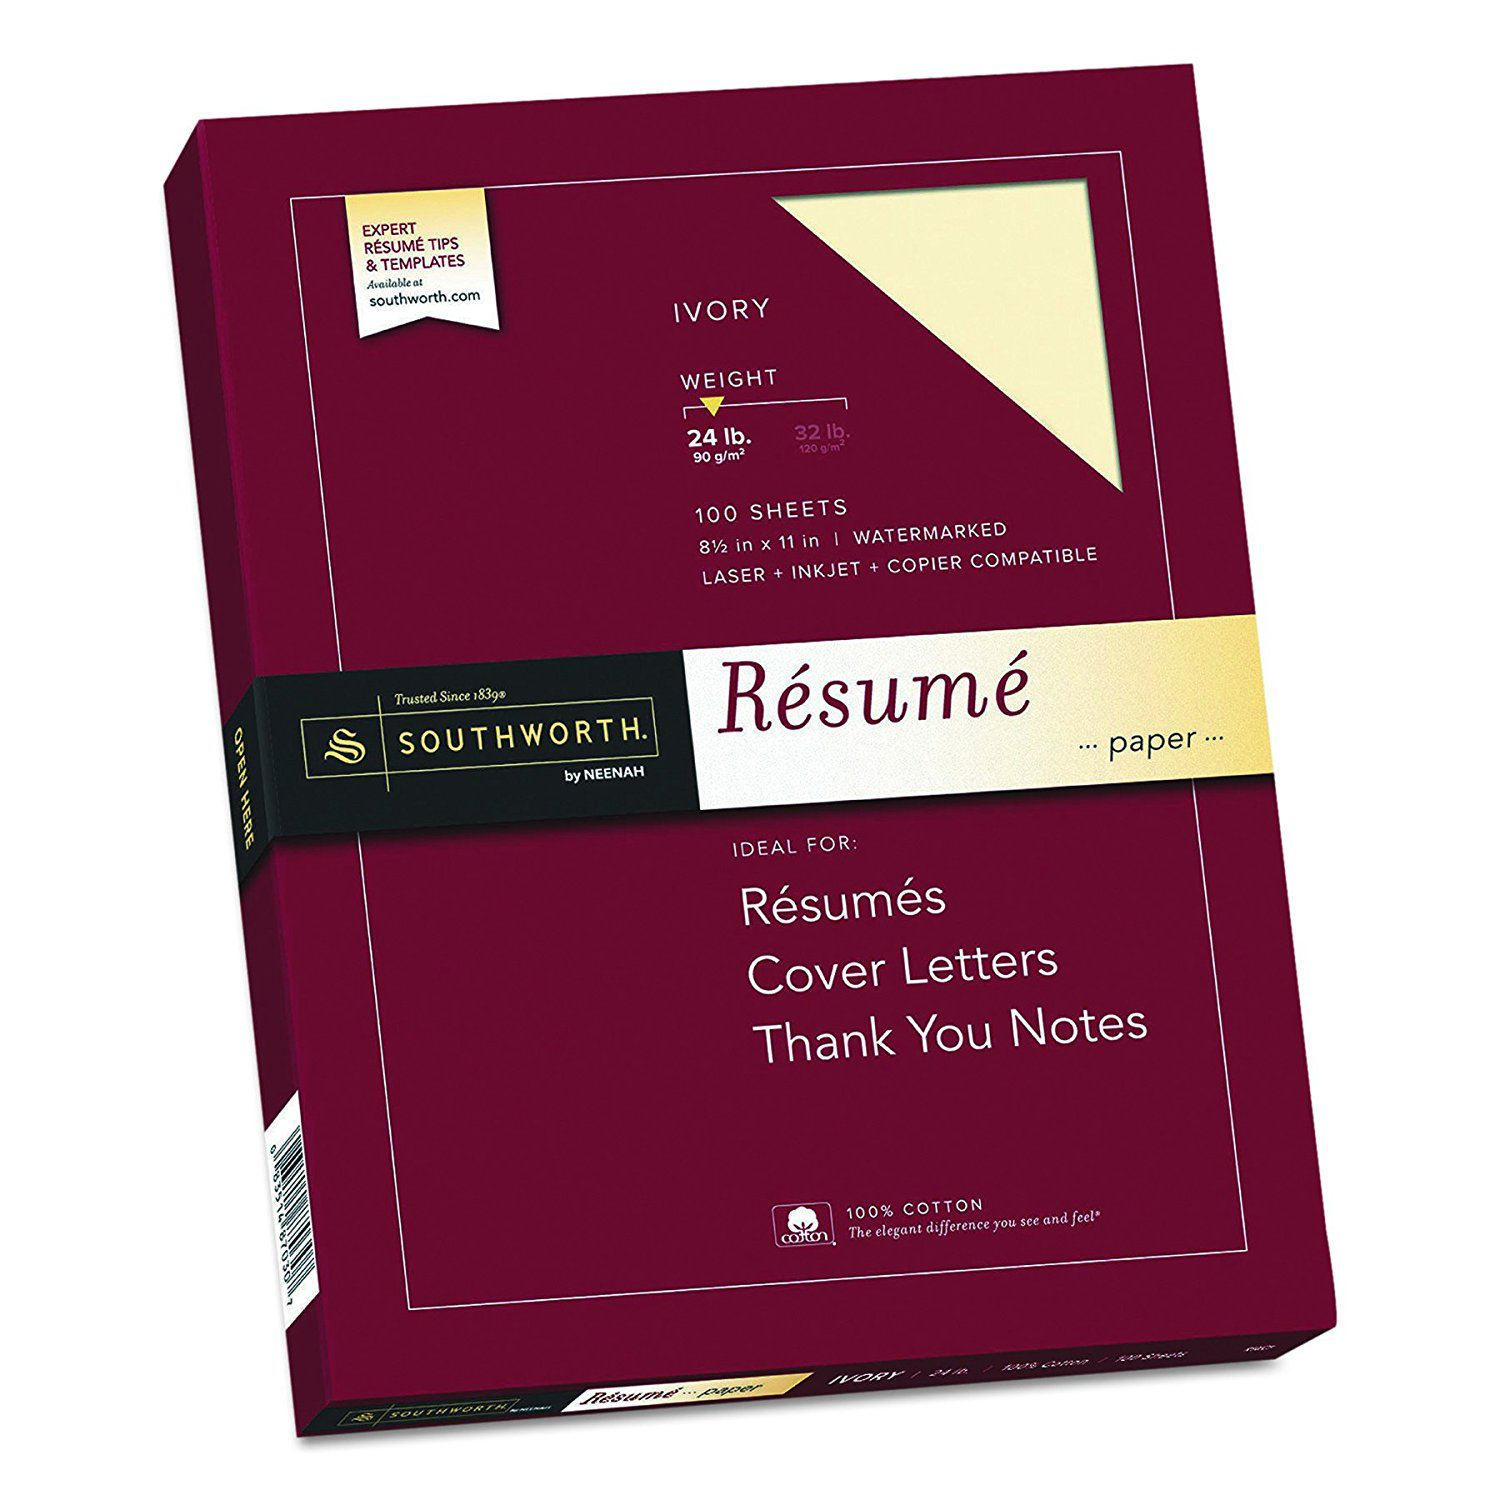 Where Can I Buy Nice Resume Paper